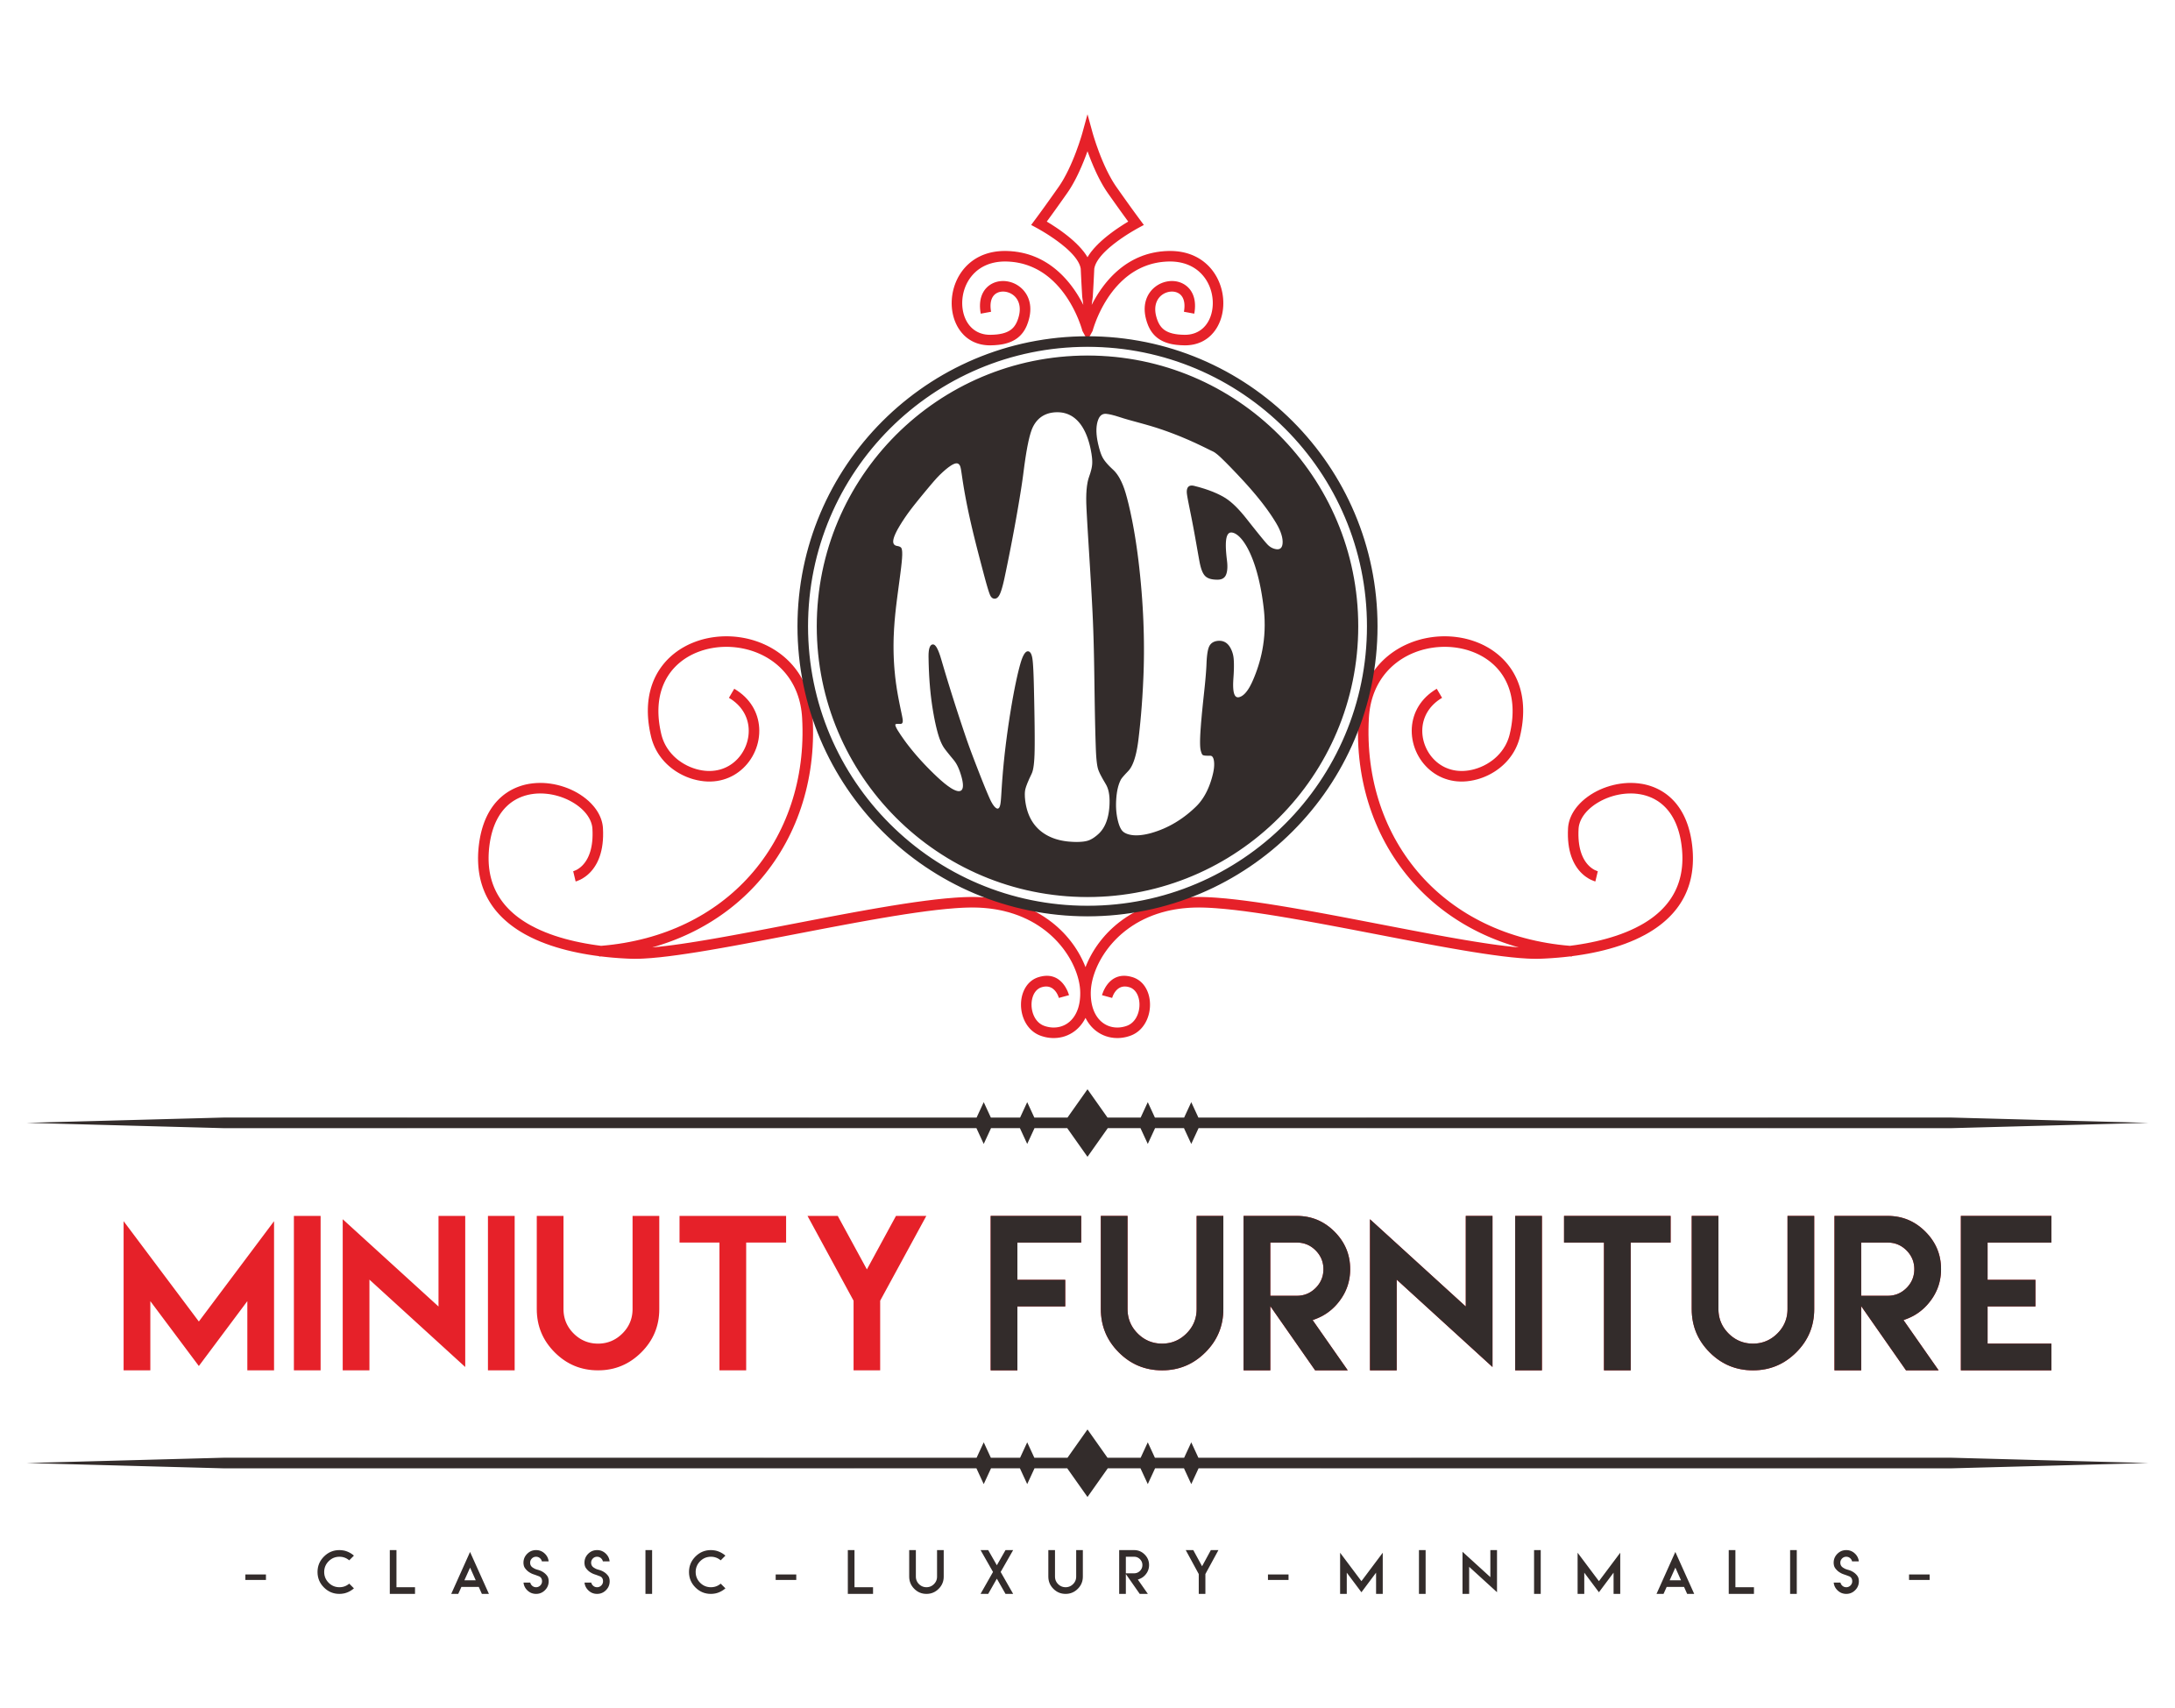 MINIUTY FURNITURE